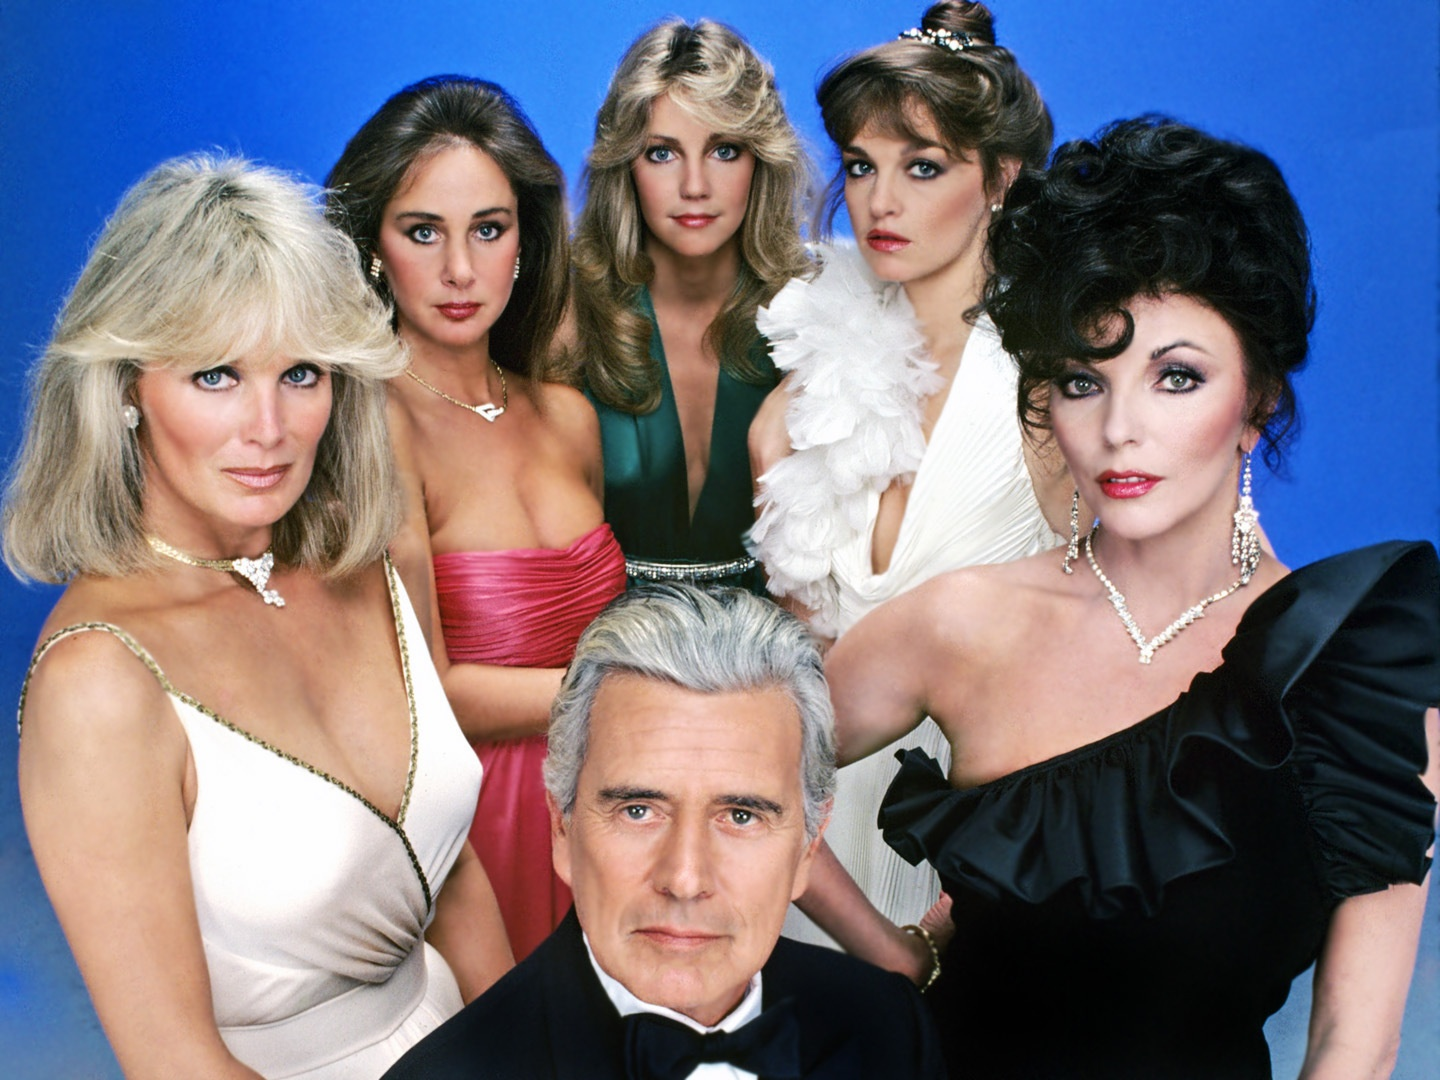 The Female Stars Of Dynasty Made It The Sexiest Show Of The '80s